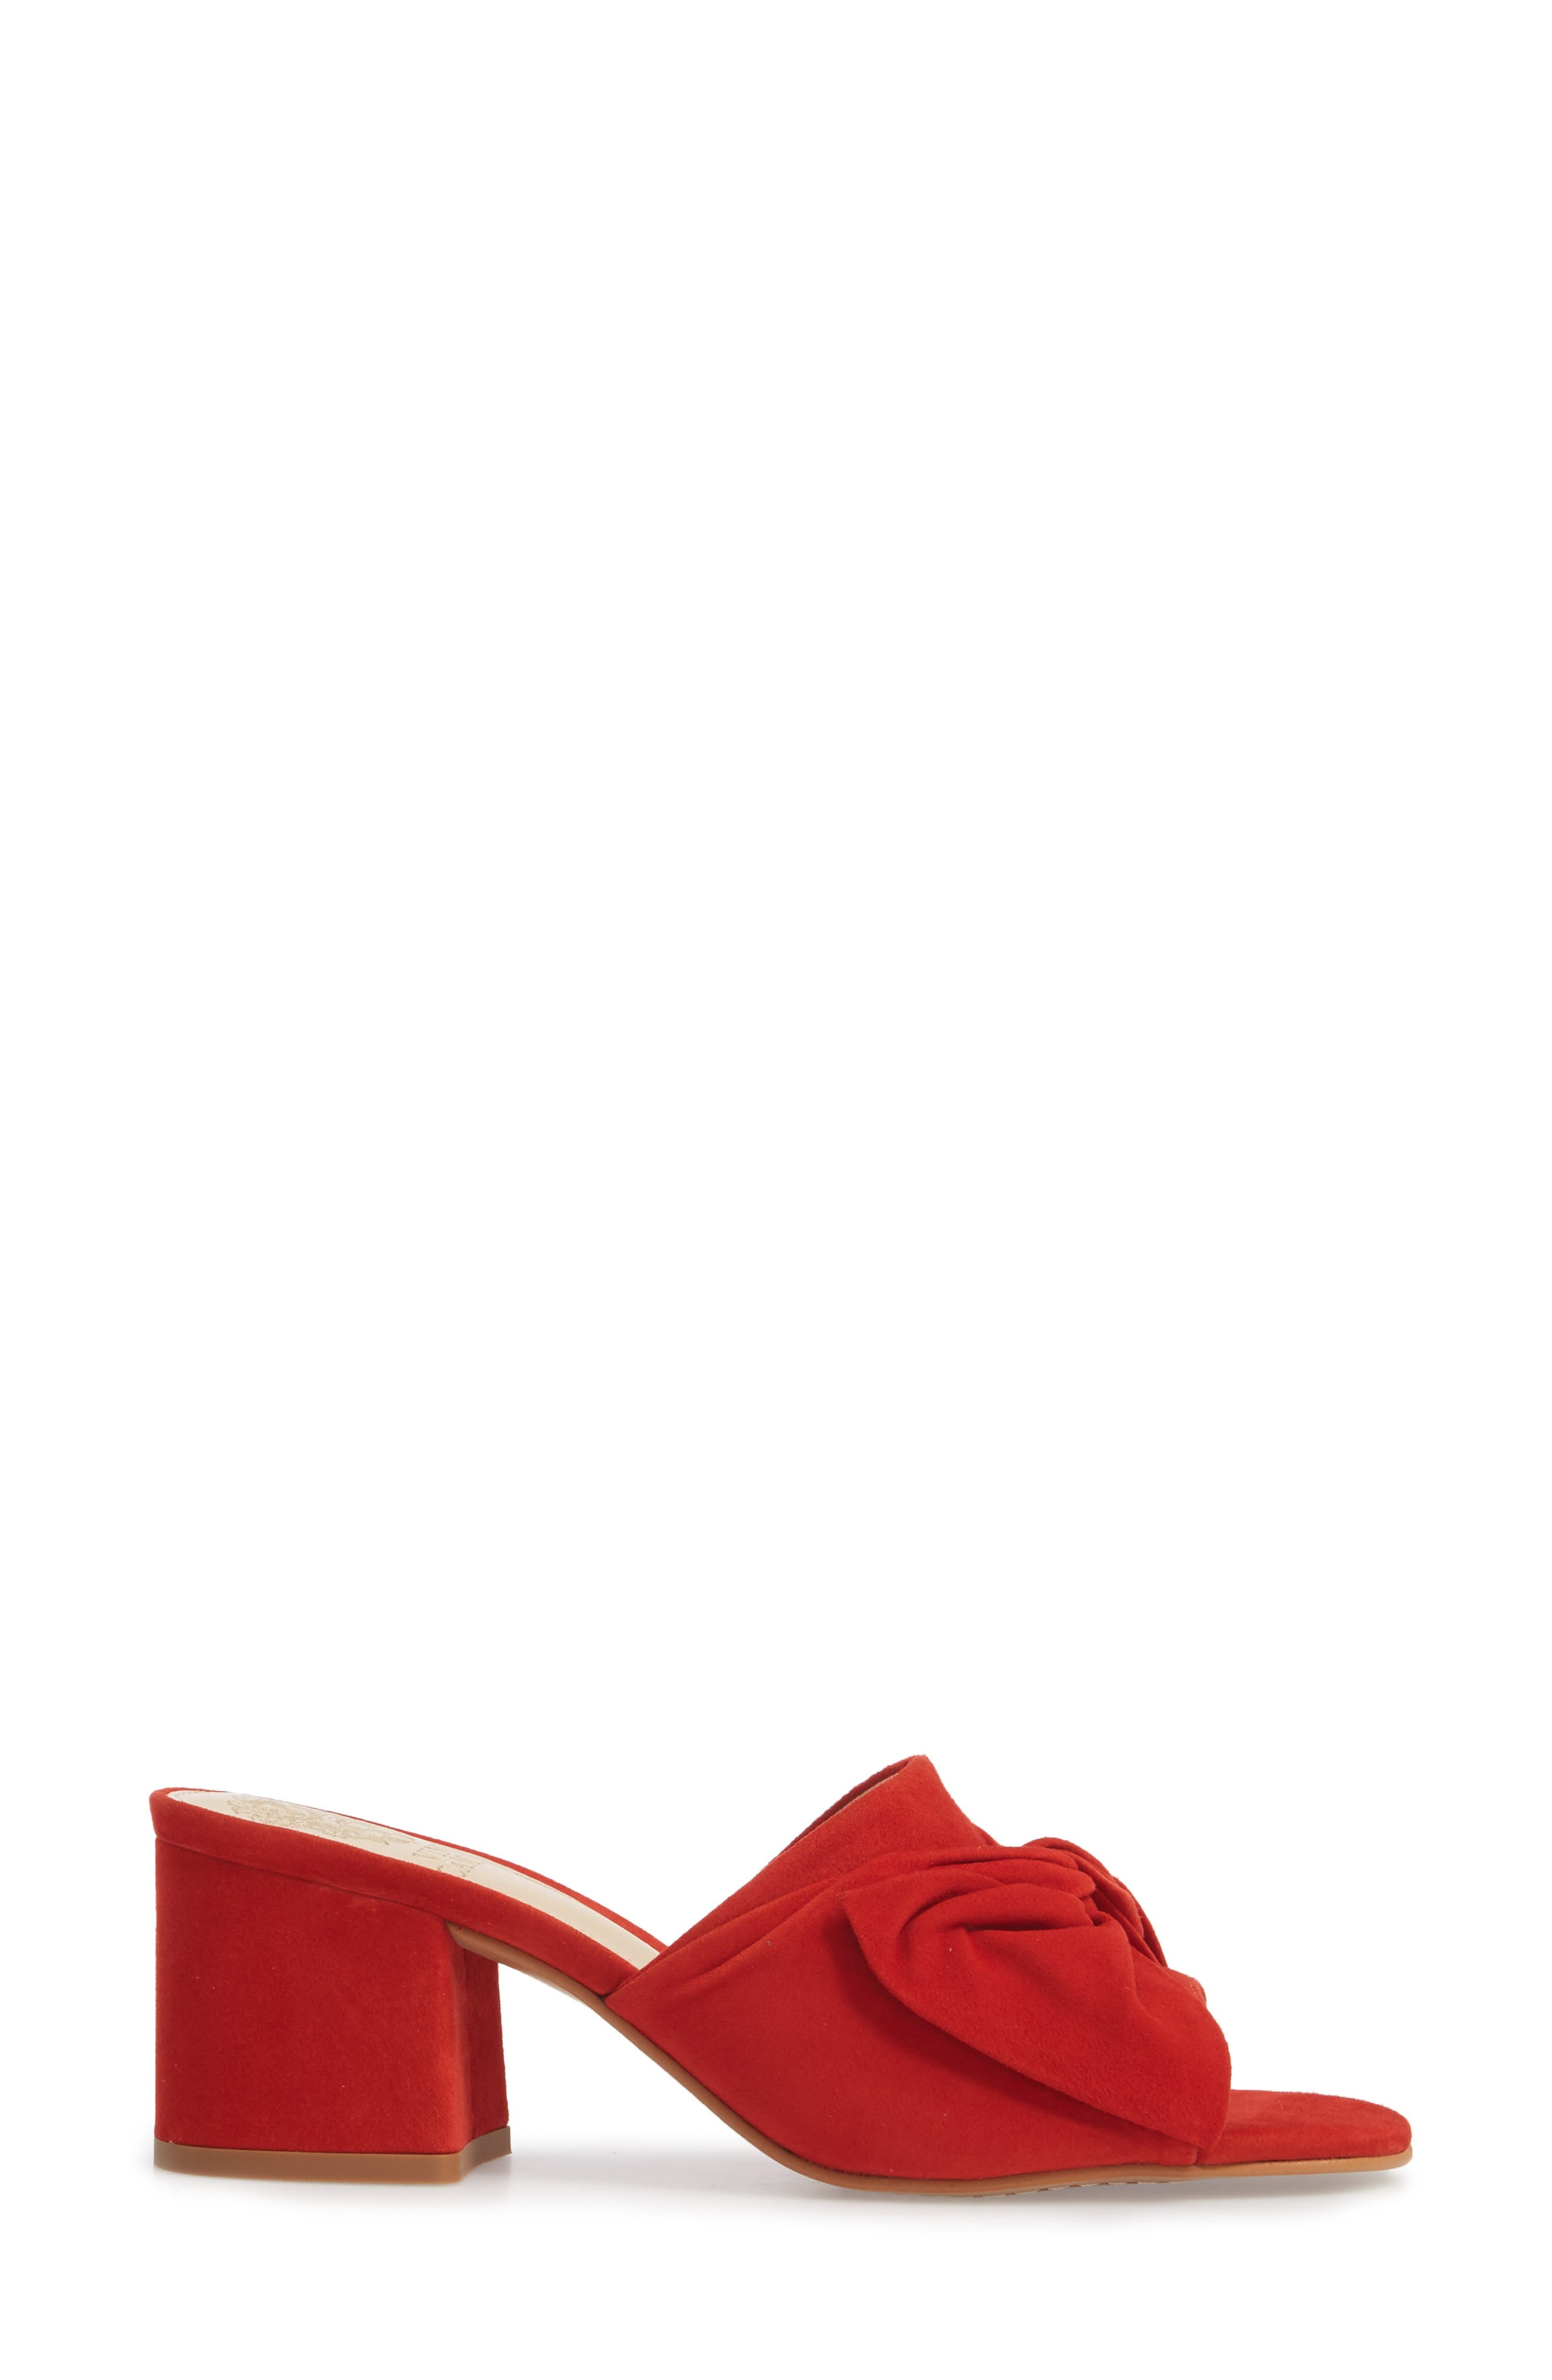 Sharrey Sandal,                             Alternate thumbnail 3, color,                             Red Hot Rio Suede